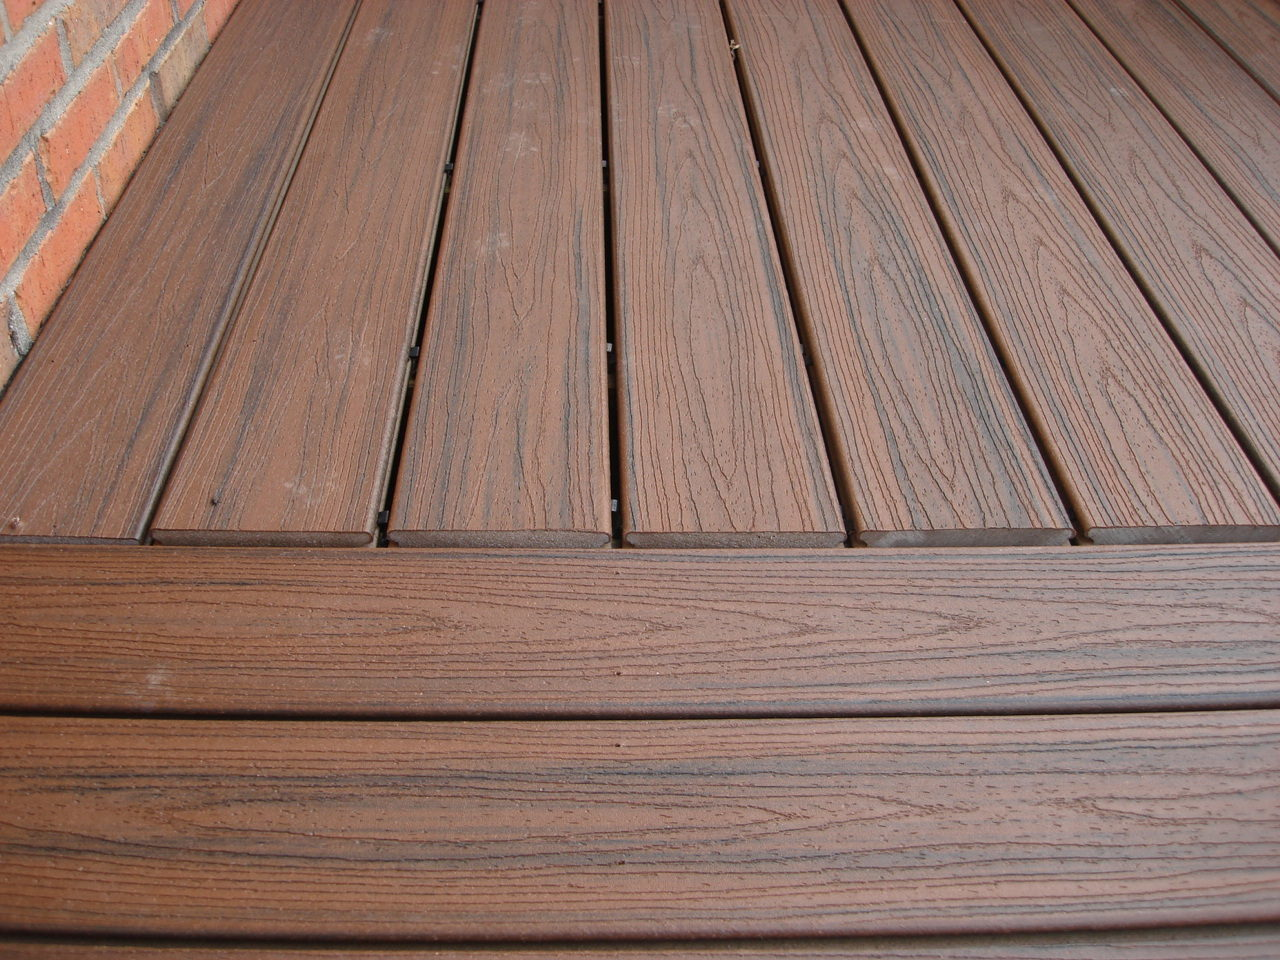 Top 70 complaints and reviews about trex composite decking for Best composite decking material